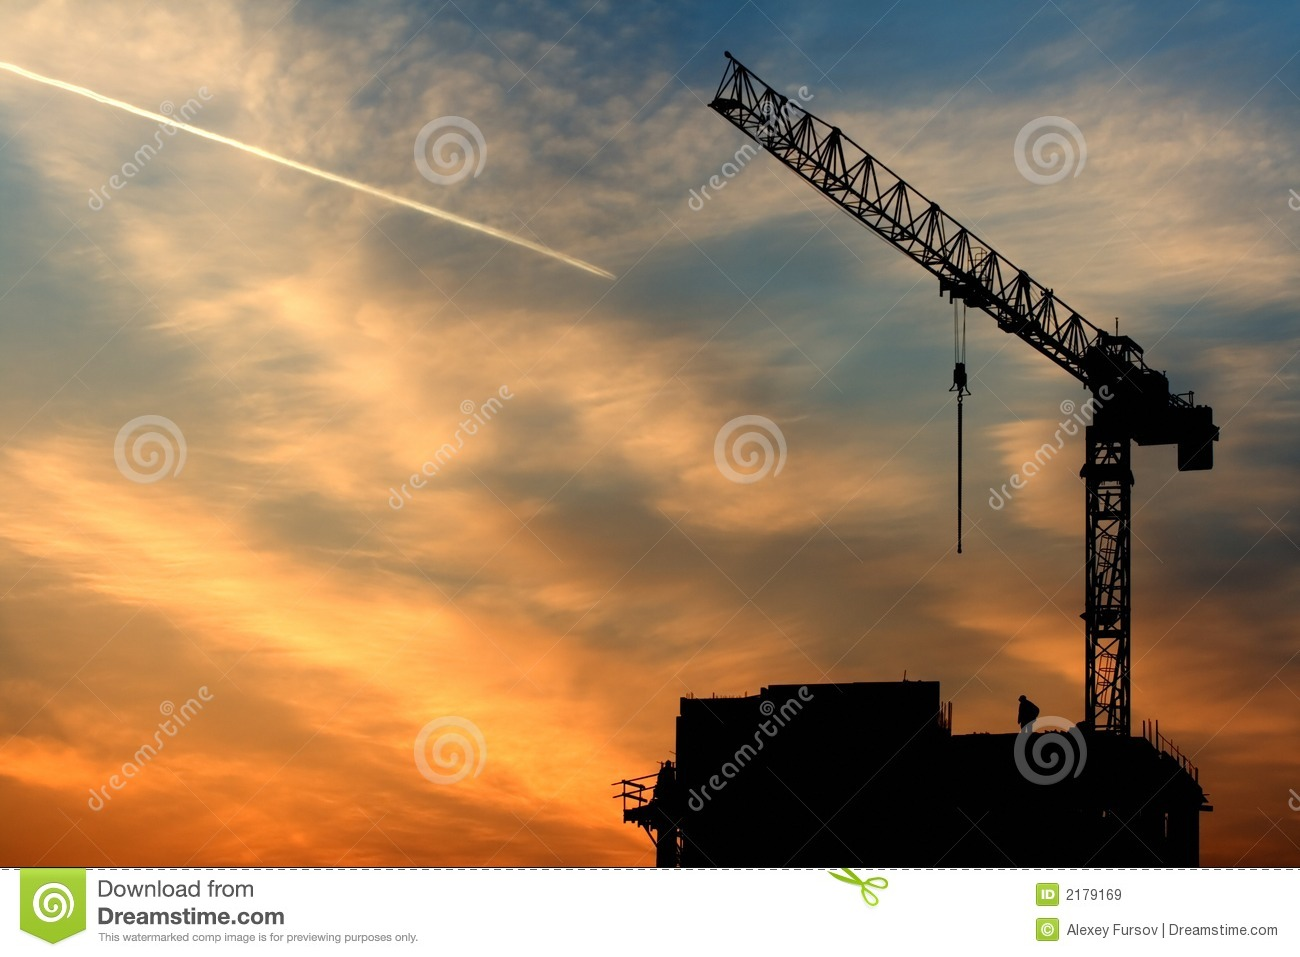 Crane, airplane and sunrise